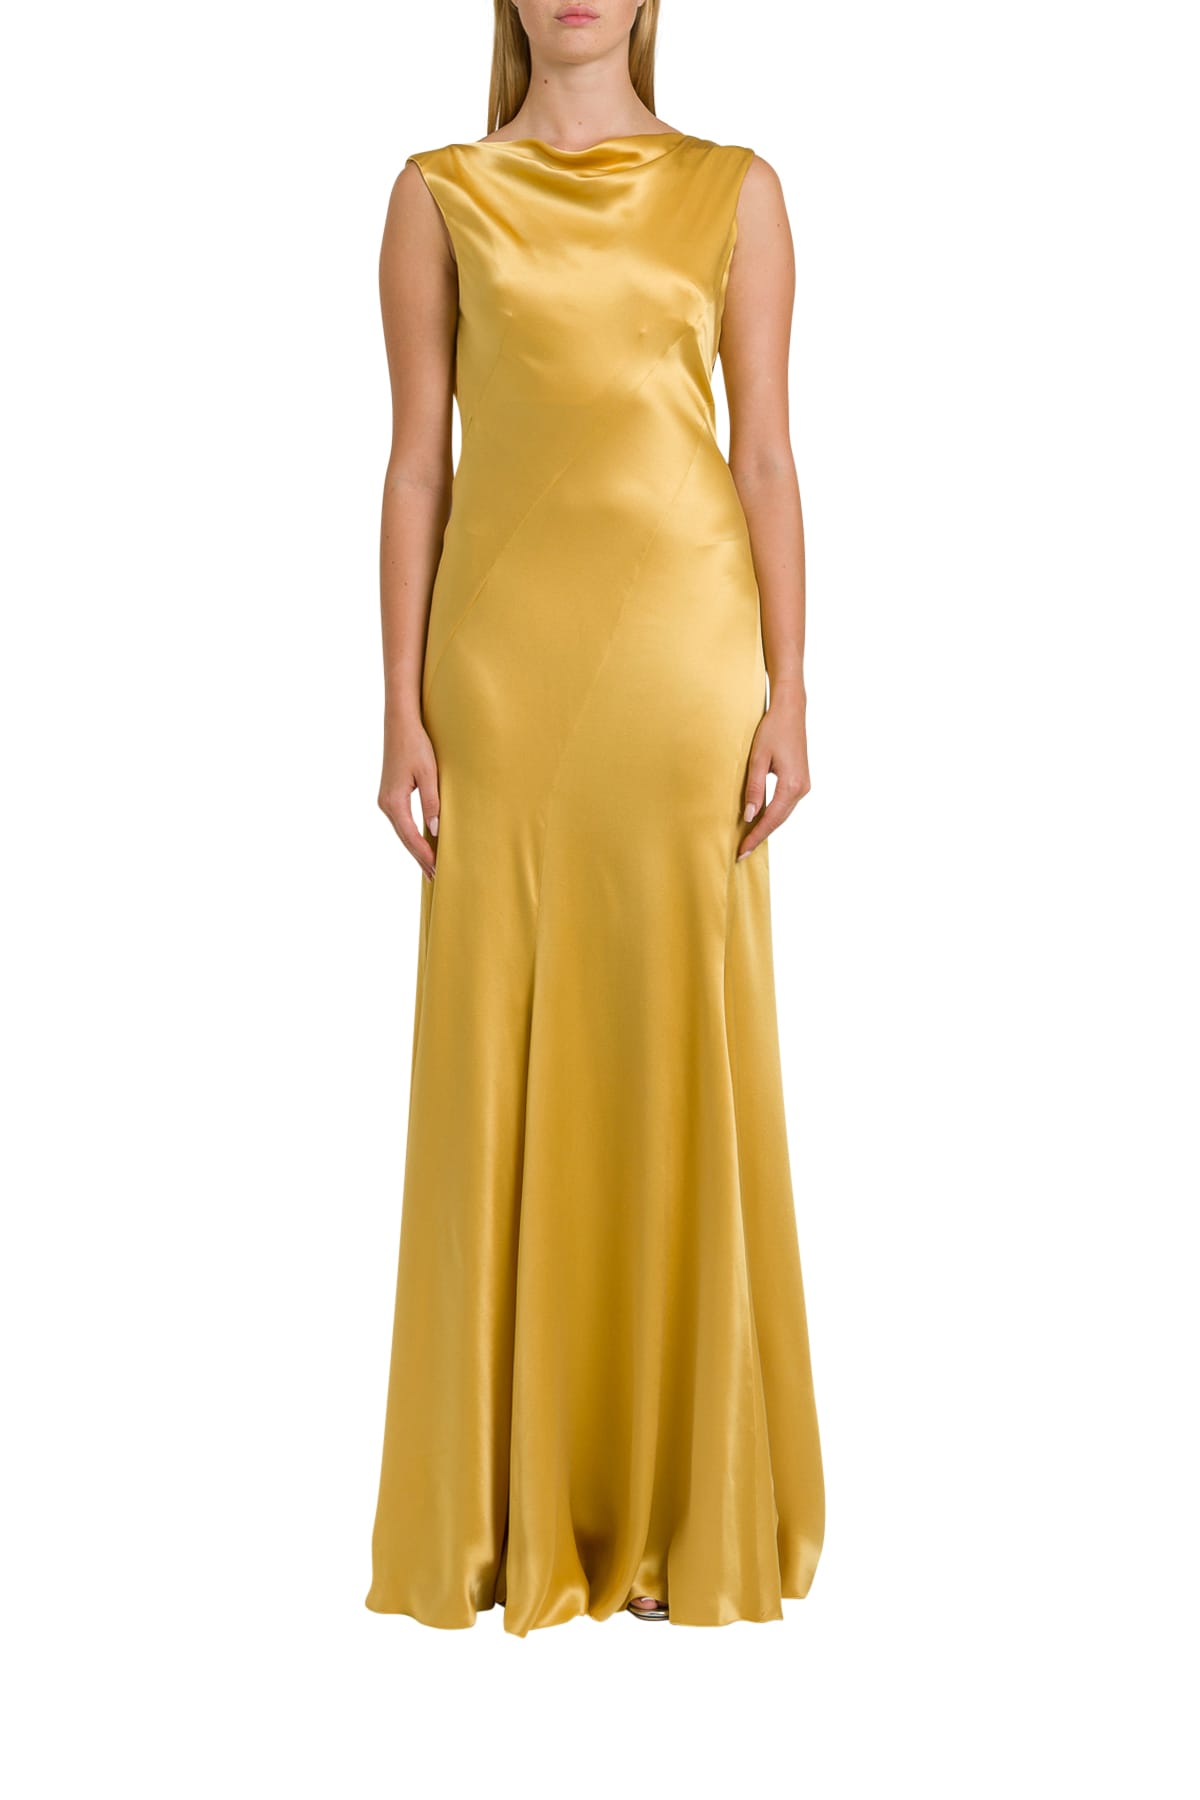 Alberta Ferretti Mermaid Silhouette Dress In Silk Satin